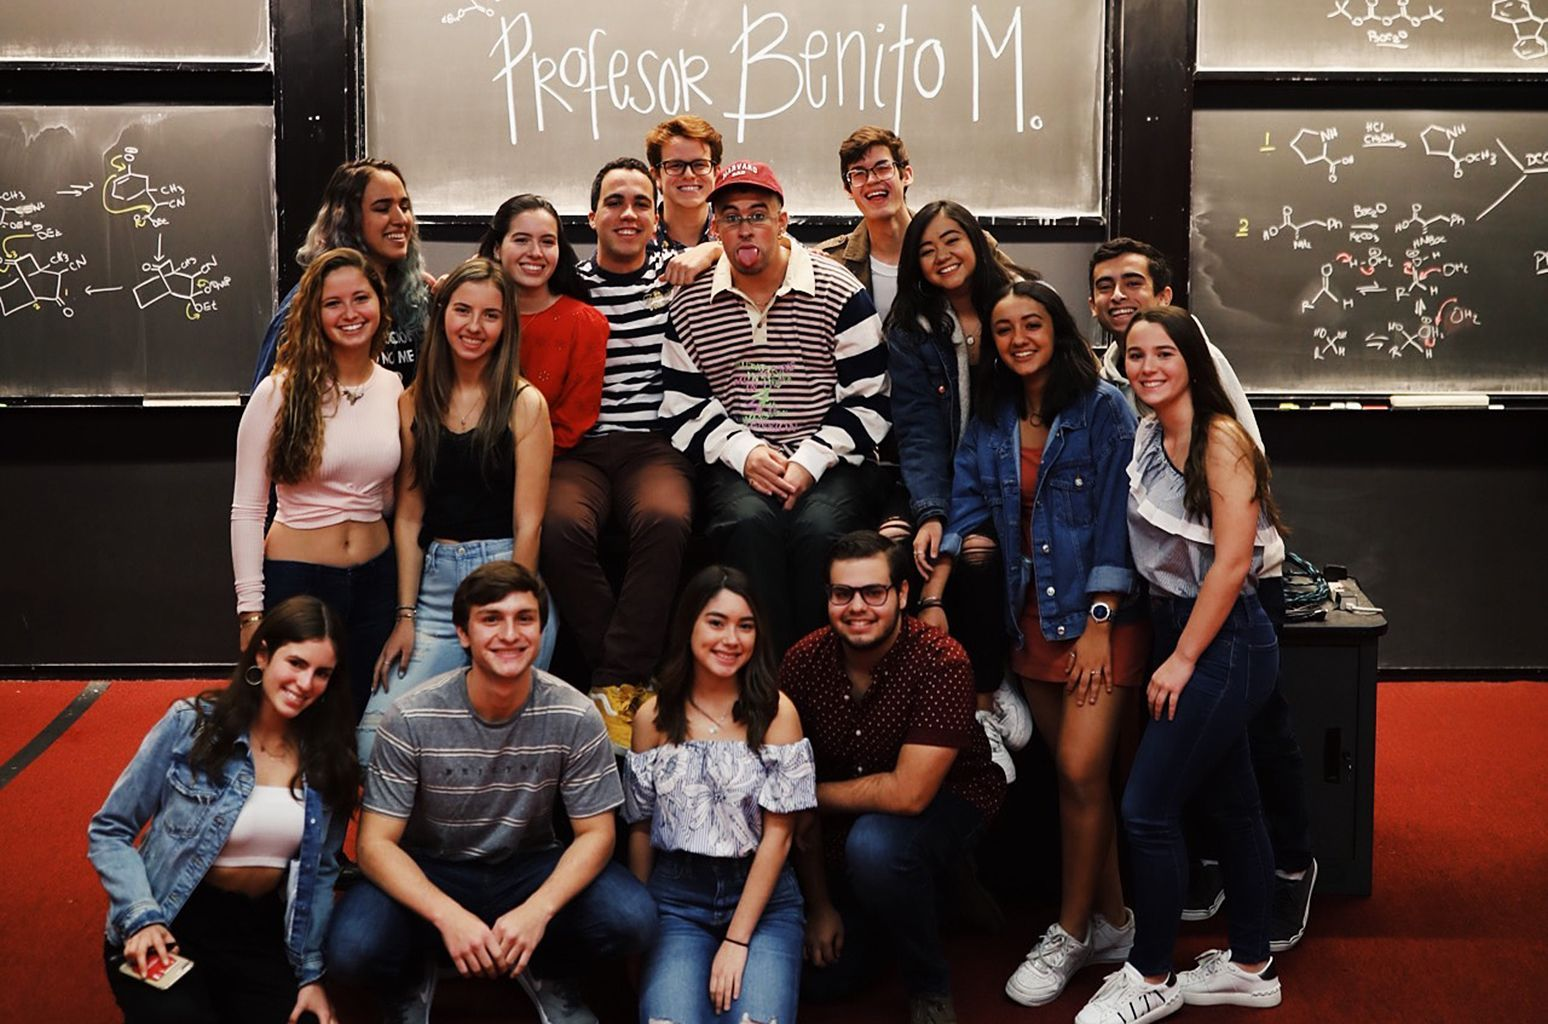 Here's What Happened When Bad Bunny Visited Harvard University #badbunny On Friday (Oct. 25), Latin trap star Bad Bunny made a special stop at Harvard University. #badbunny